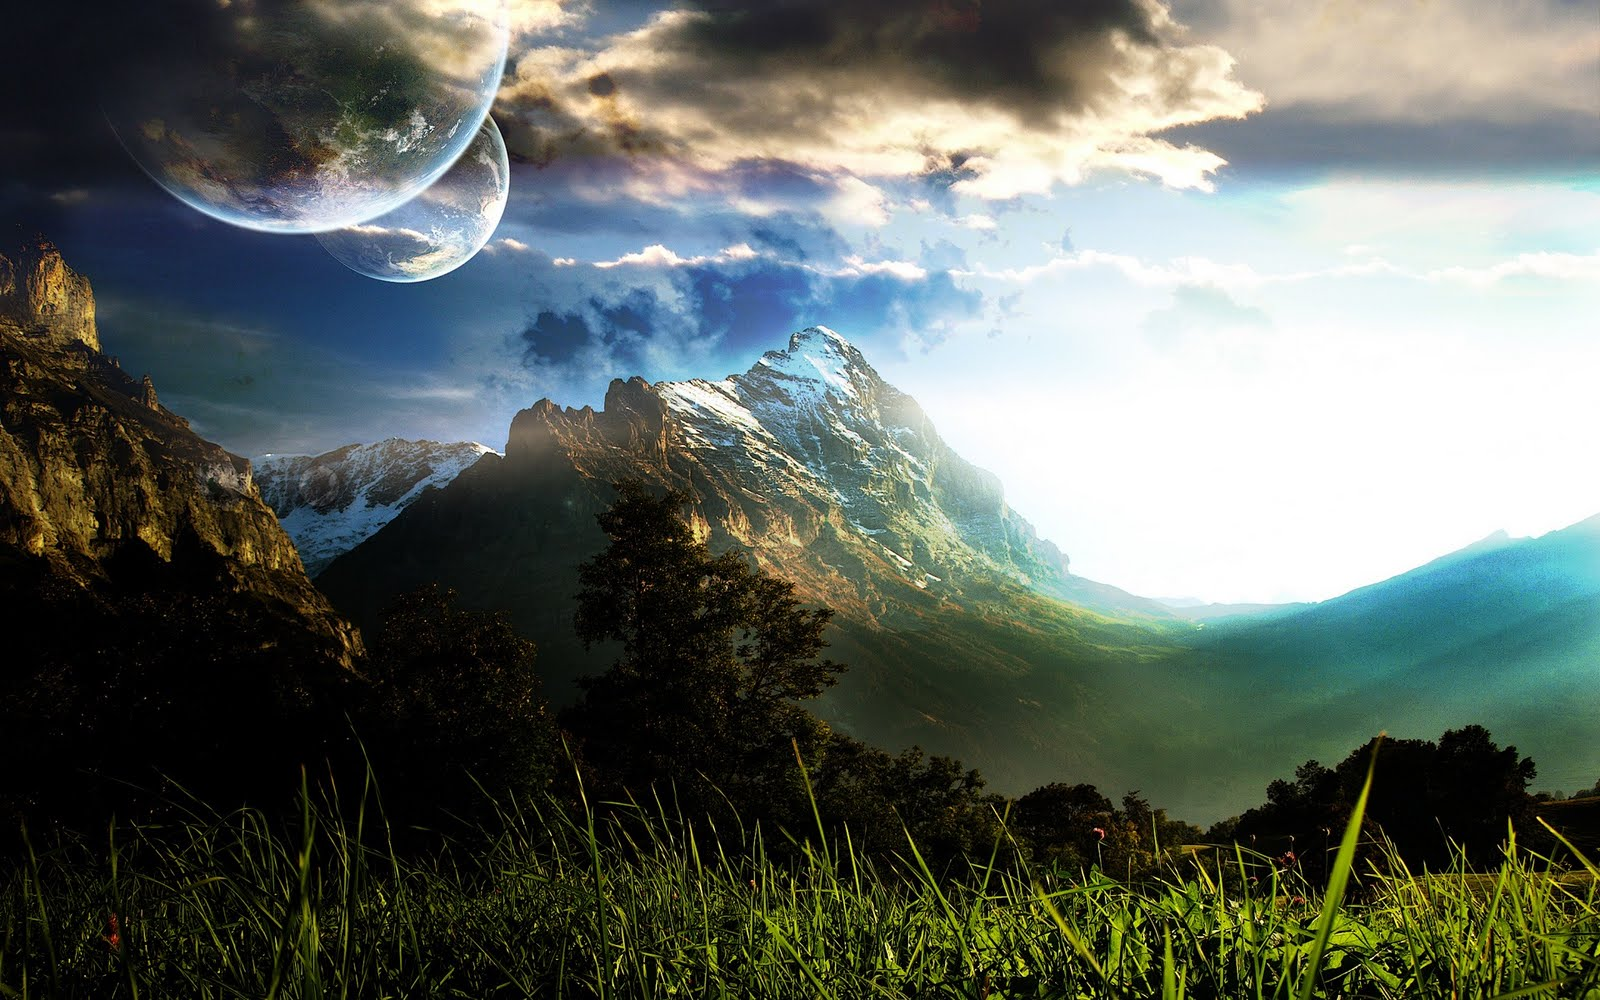 wallpaper Most Amazing Full HD Wallpapers ever 1600x1000